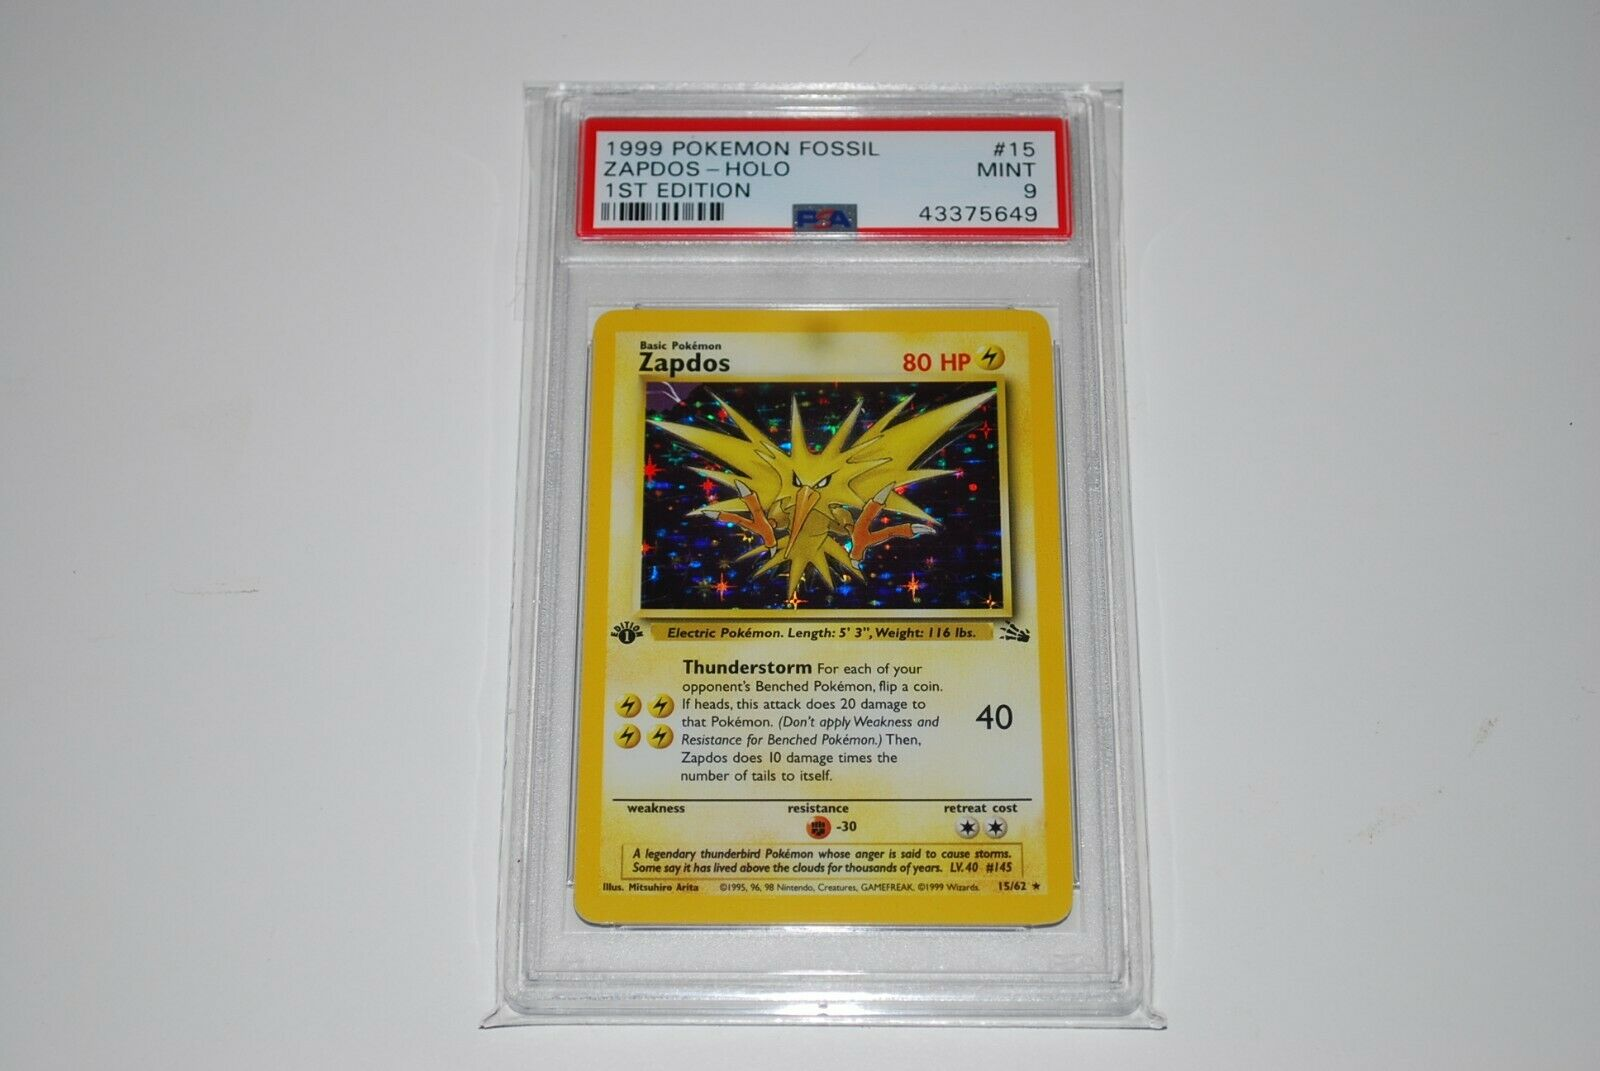 PSA 9 Mint 1st Edition Zapdos Holo 1562 Fossil Pokemon Card 19992000